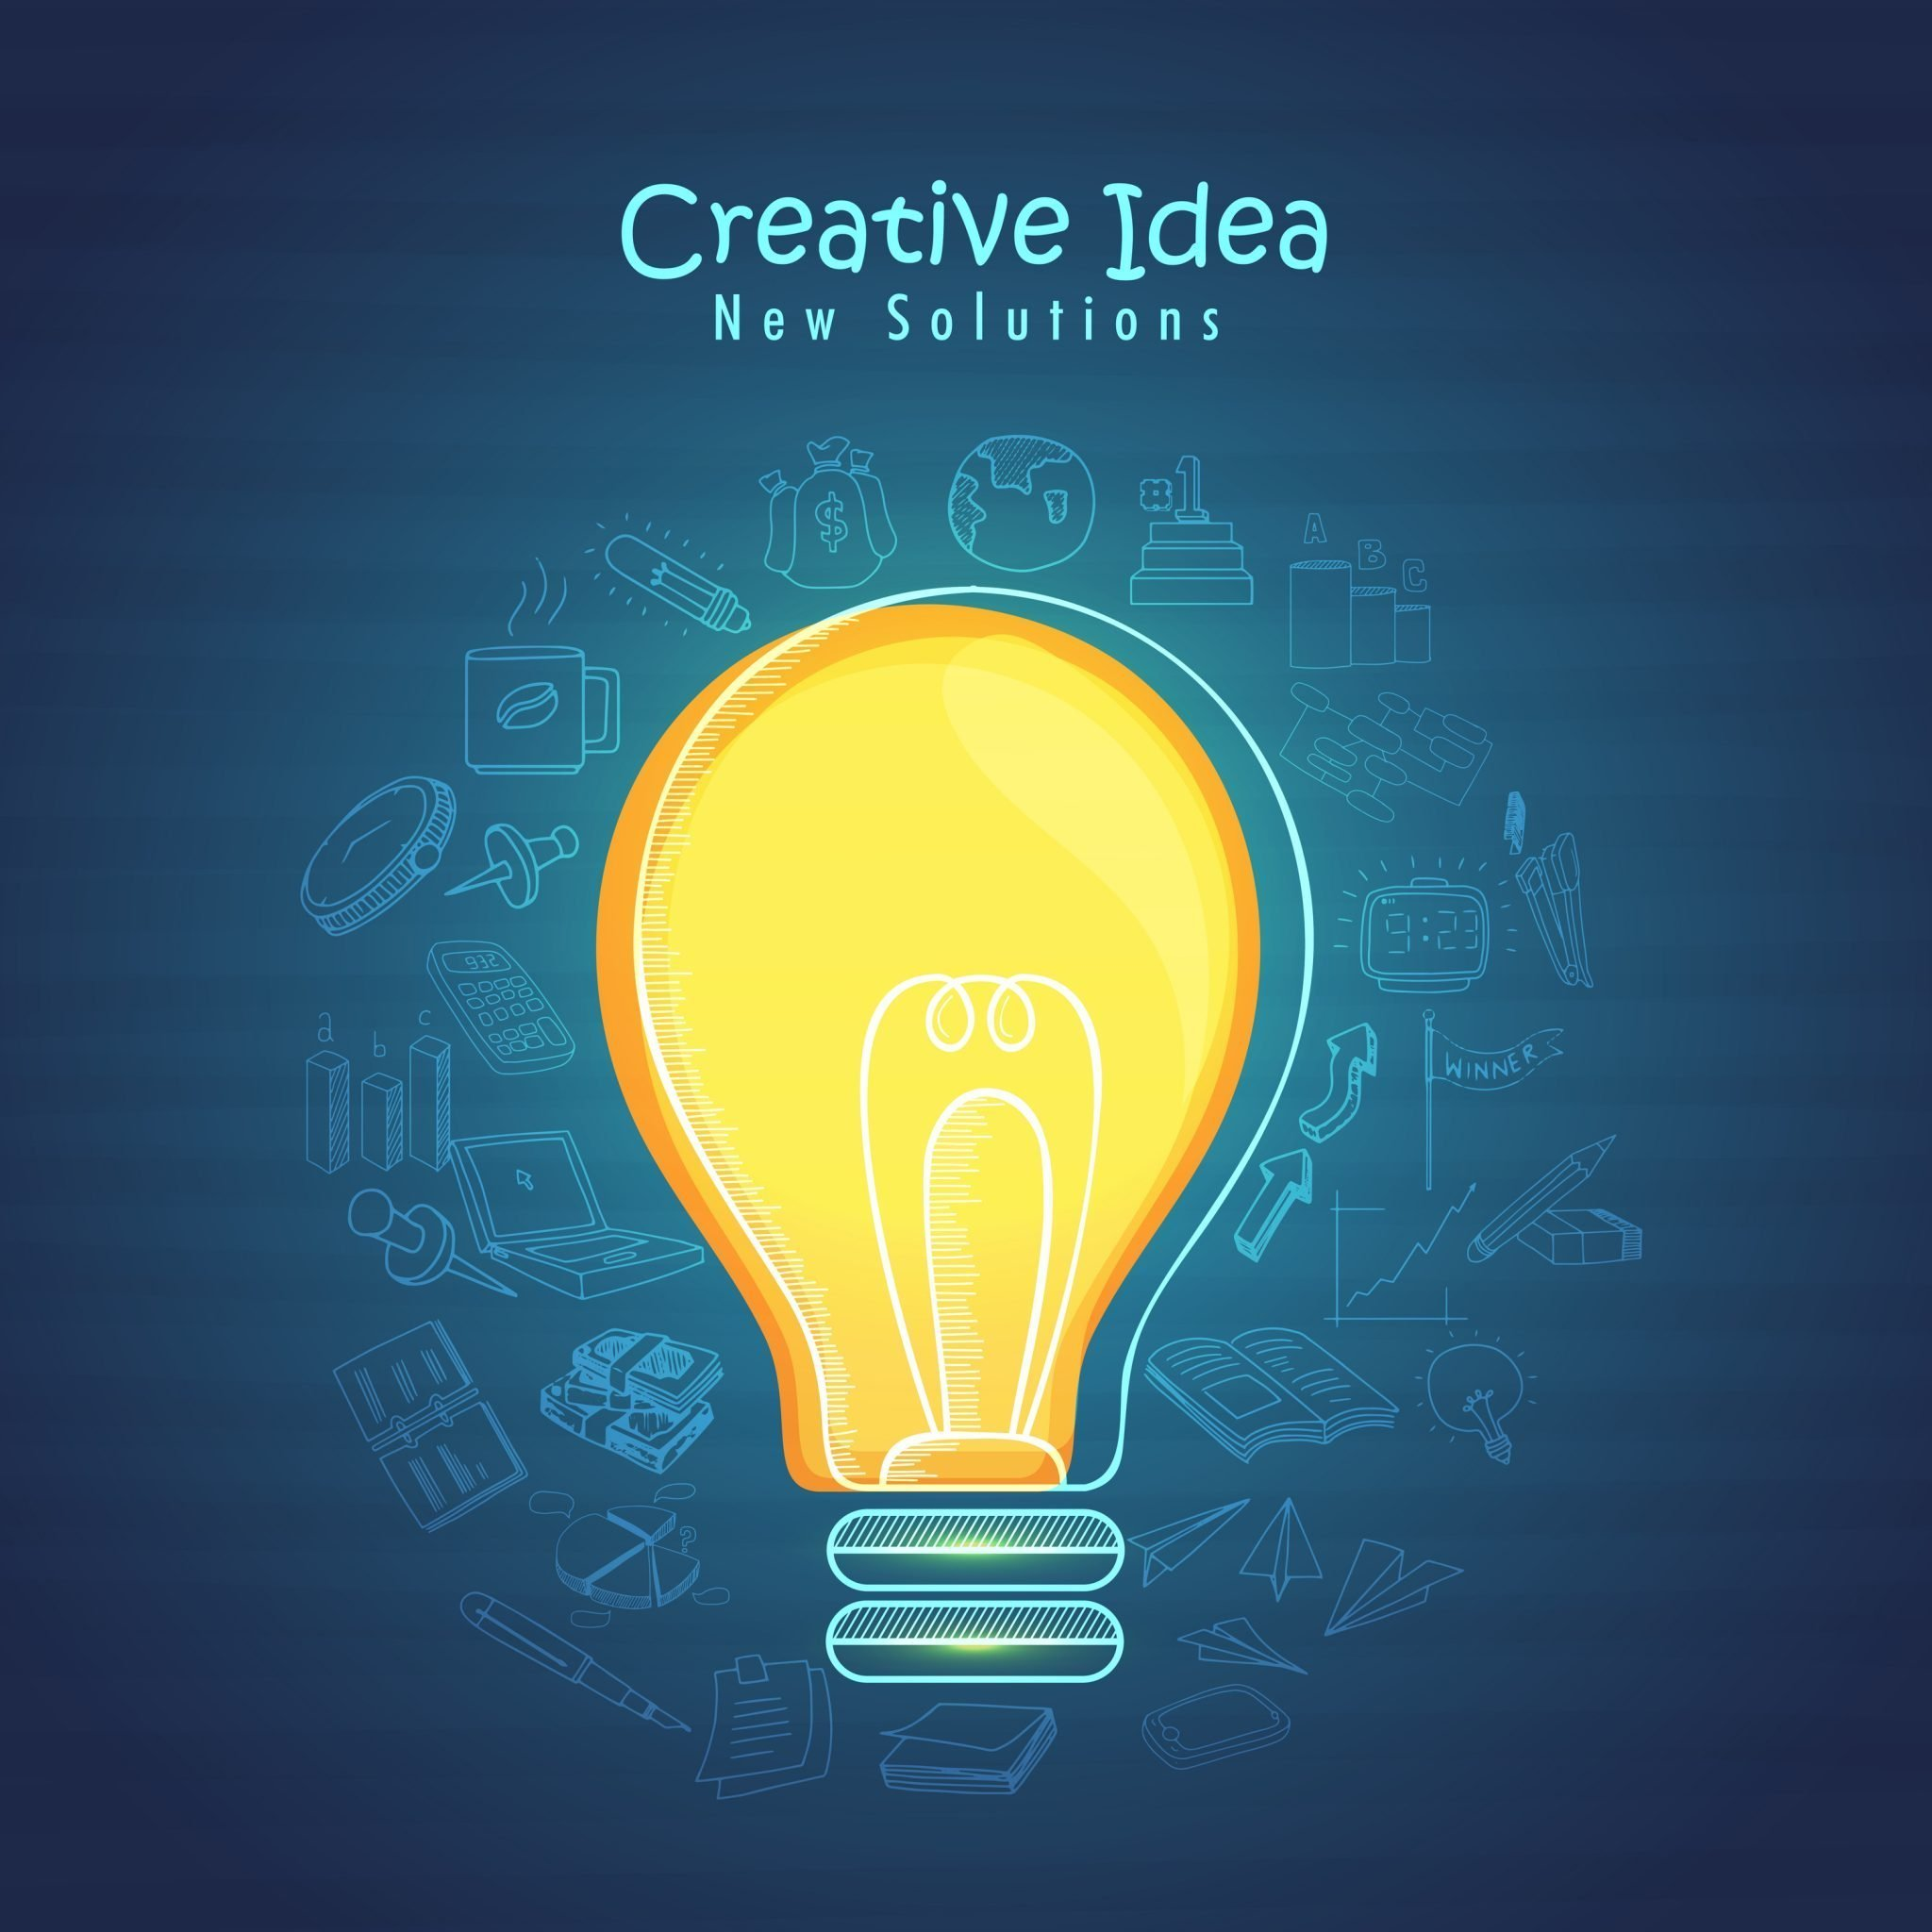 graphicstock-creative-business-infographic-elements-with-glossy-bulb-for-idea-concept_rylBSRN2ae_L.jpg